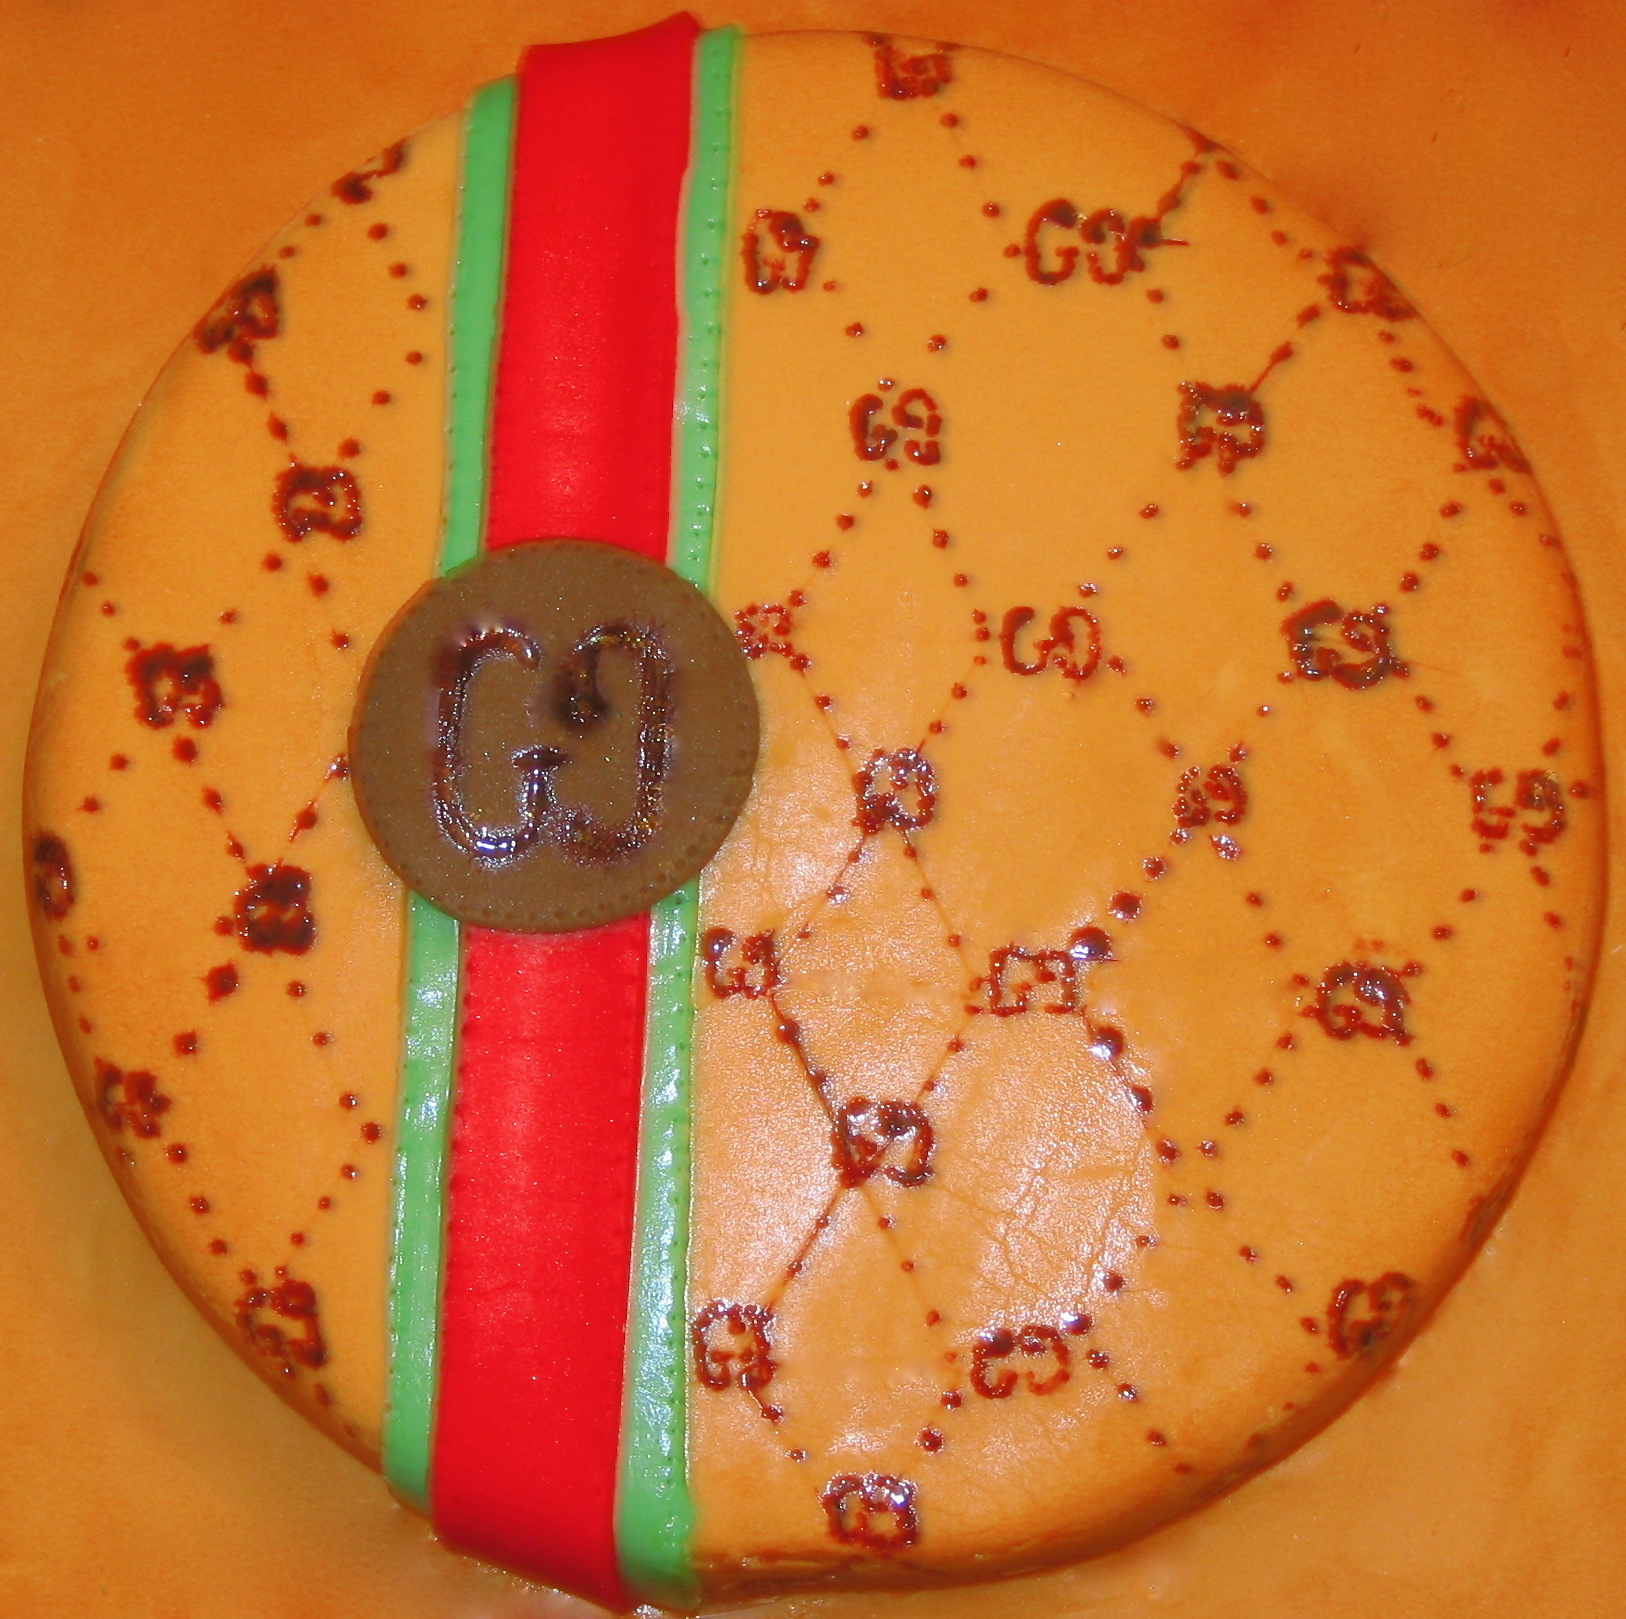 Gucci Birthday Cake